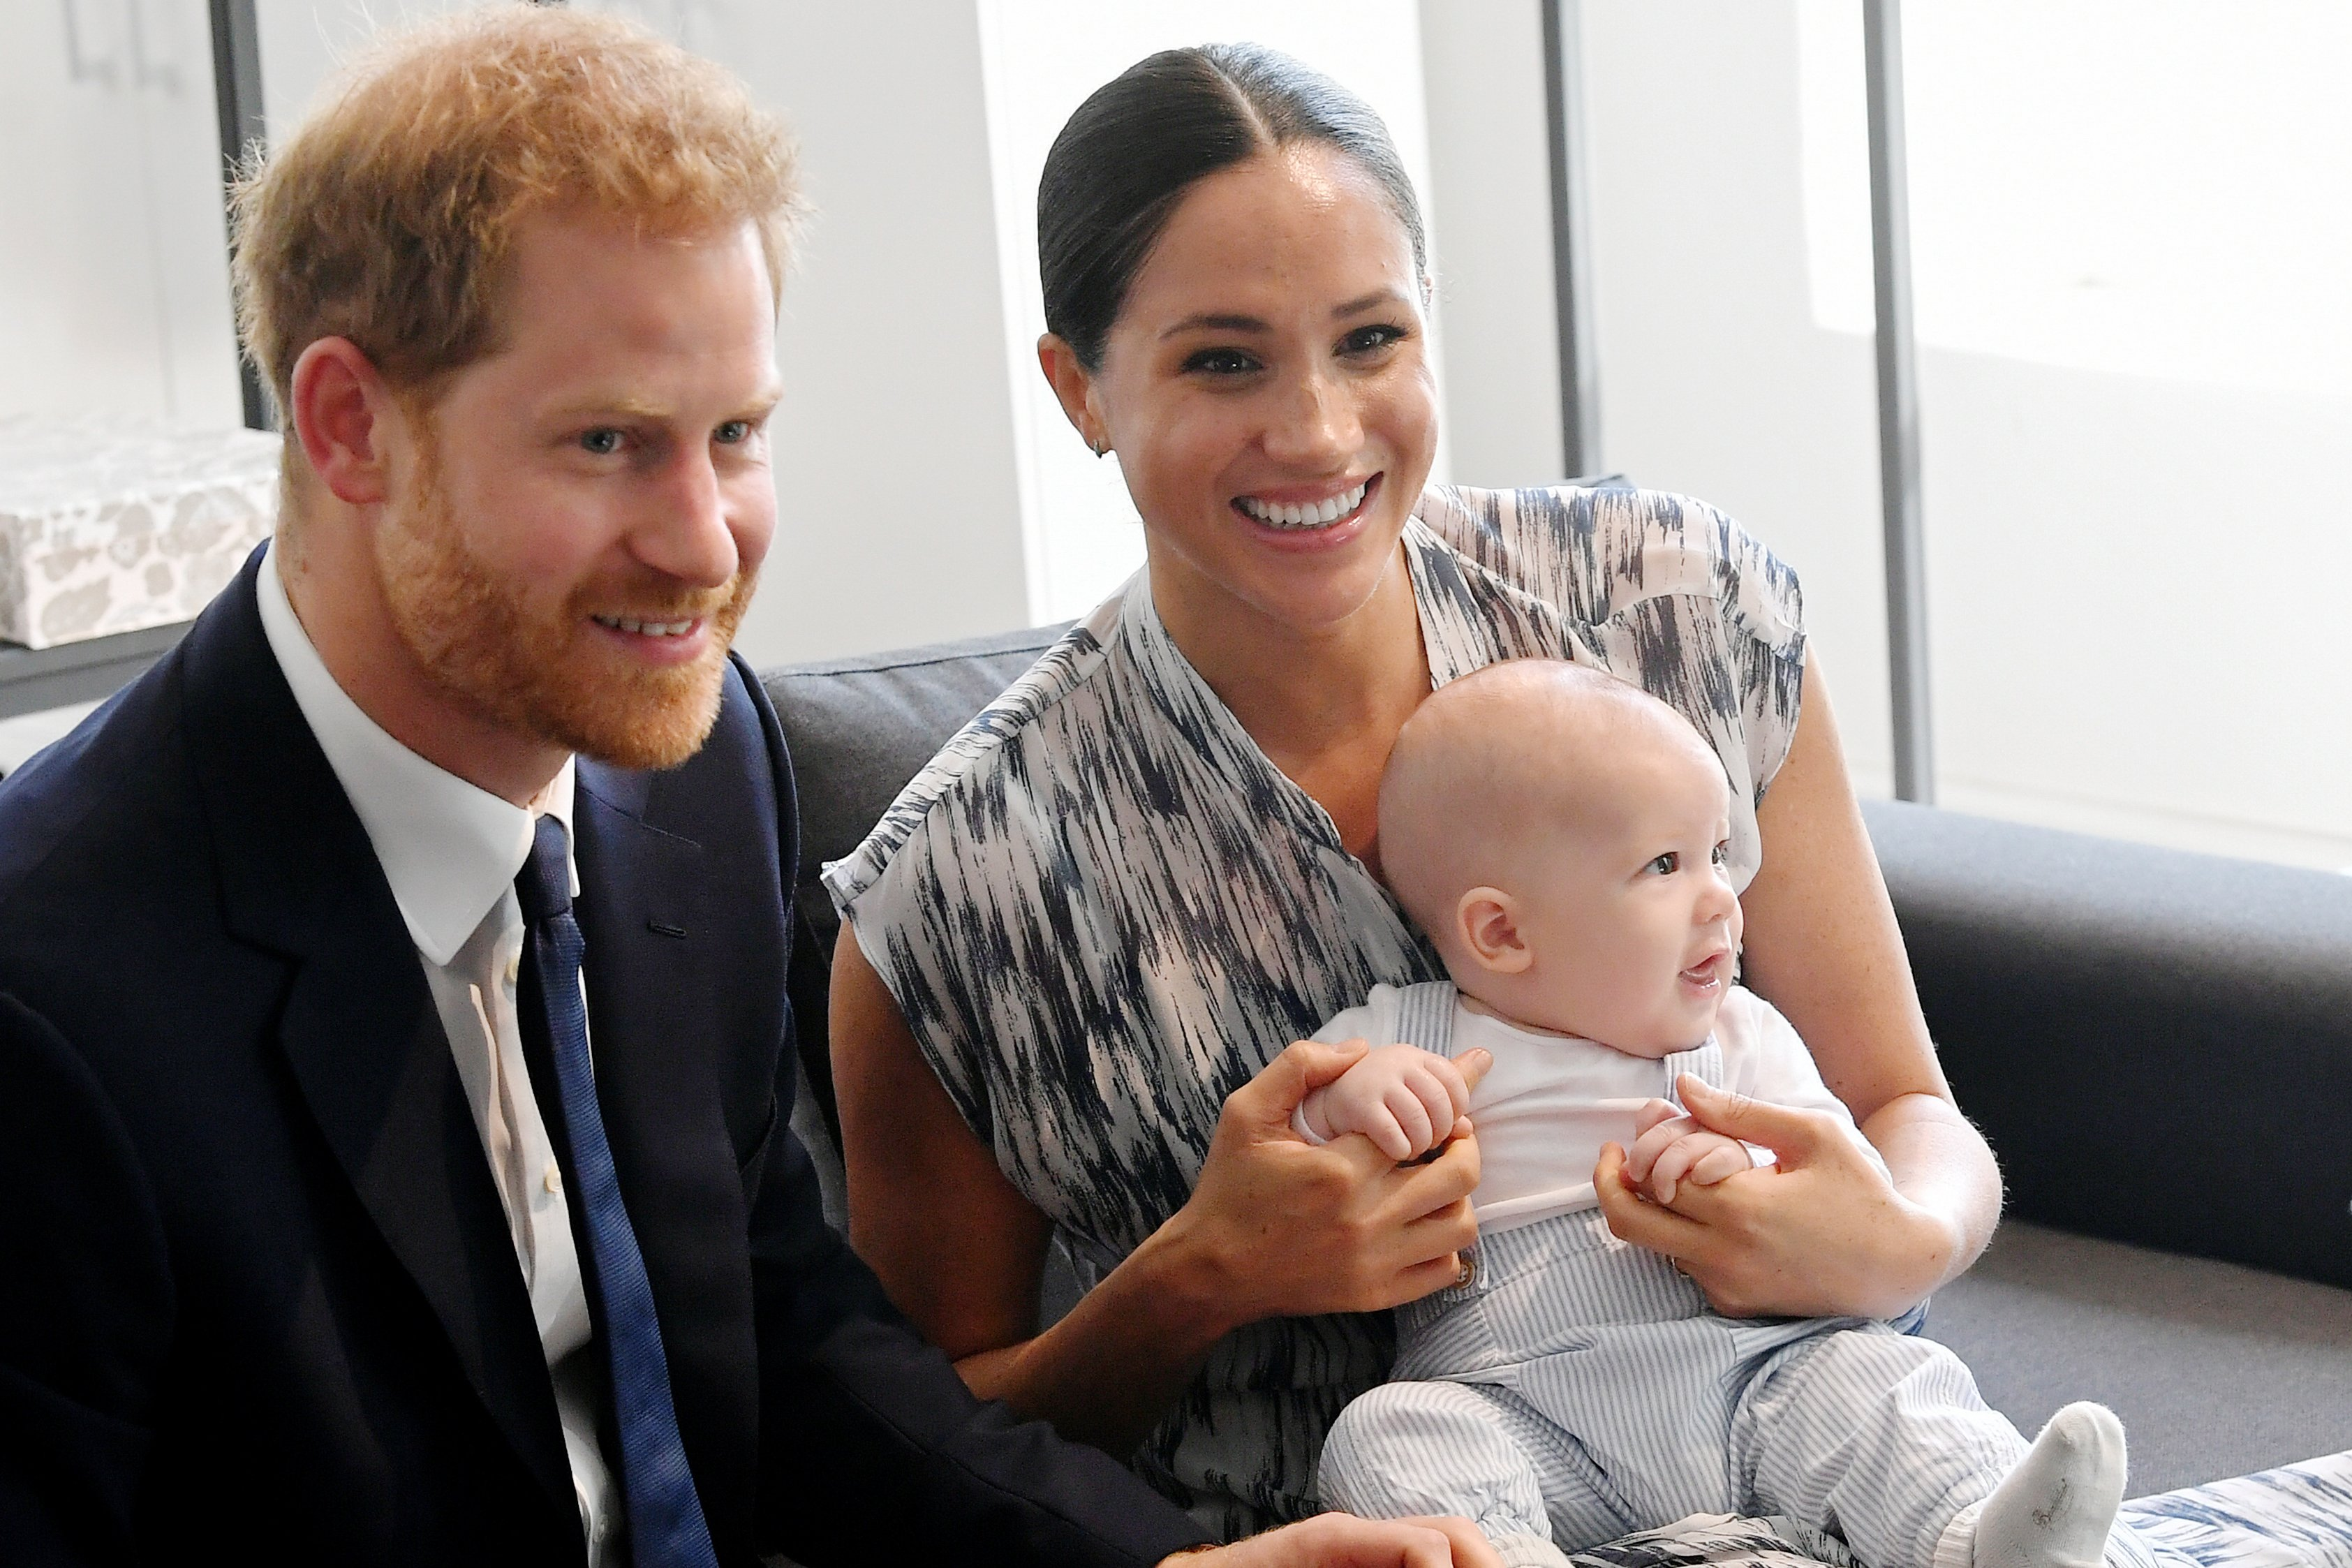 Prince Harry and Meghan Markle with son Archie Mountbatten-Windsor meeting with Archbishop Desmond Tutu in Cape Town, South Africa on September 25, 2019 | Photo: Getty Images